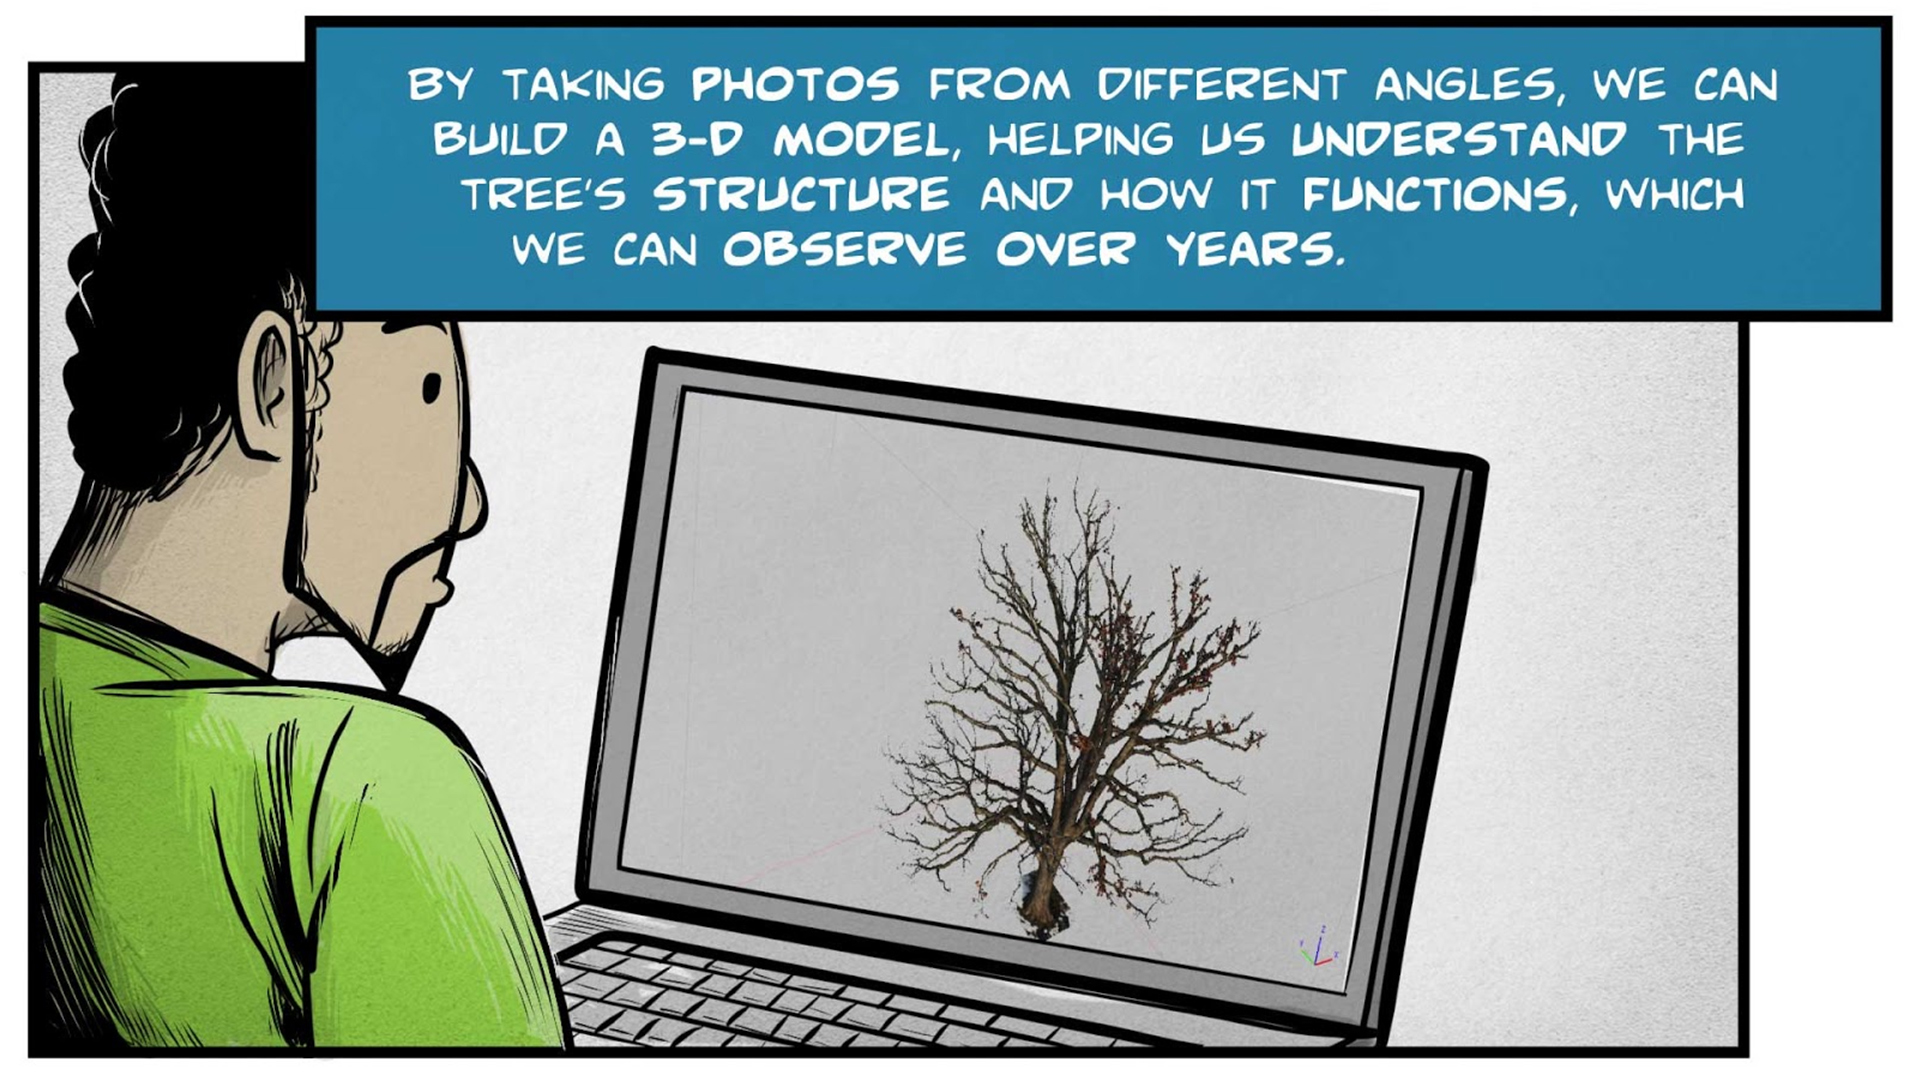 """Felix, the narrator, says, """"By taking photos from different angles, we can build a 3-D model, helping us understand the tree's structure and how it functions, which we can observe over years."""" He looks at a 3D model of a tree on a computer screen."""